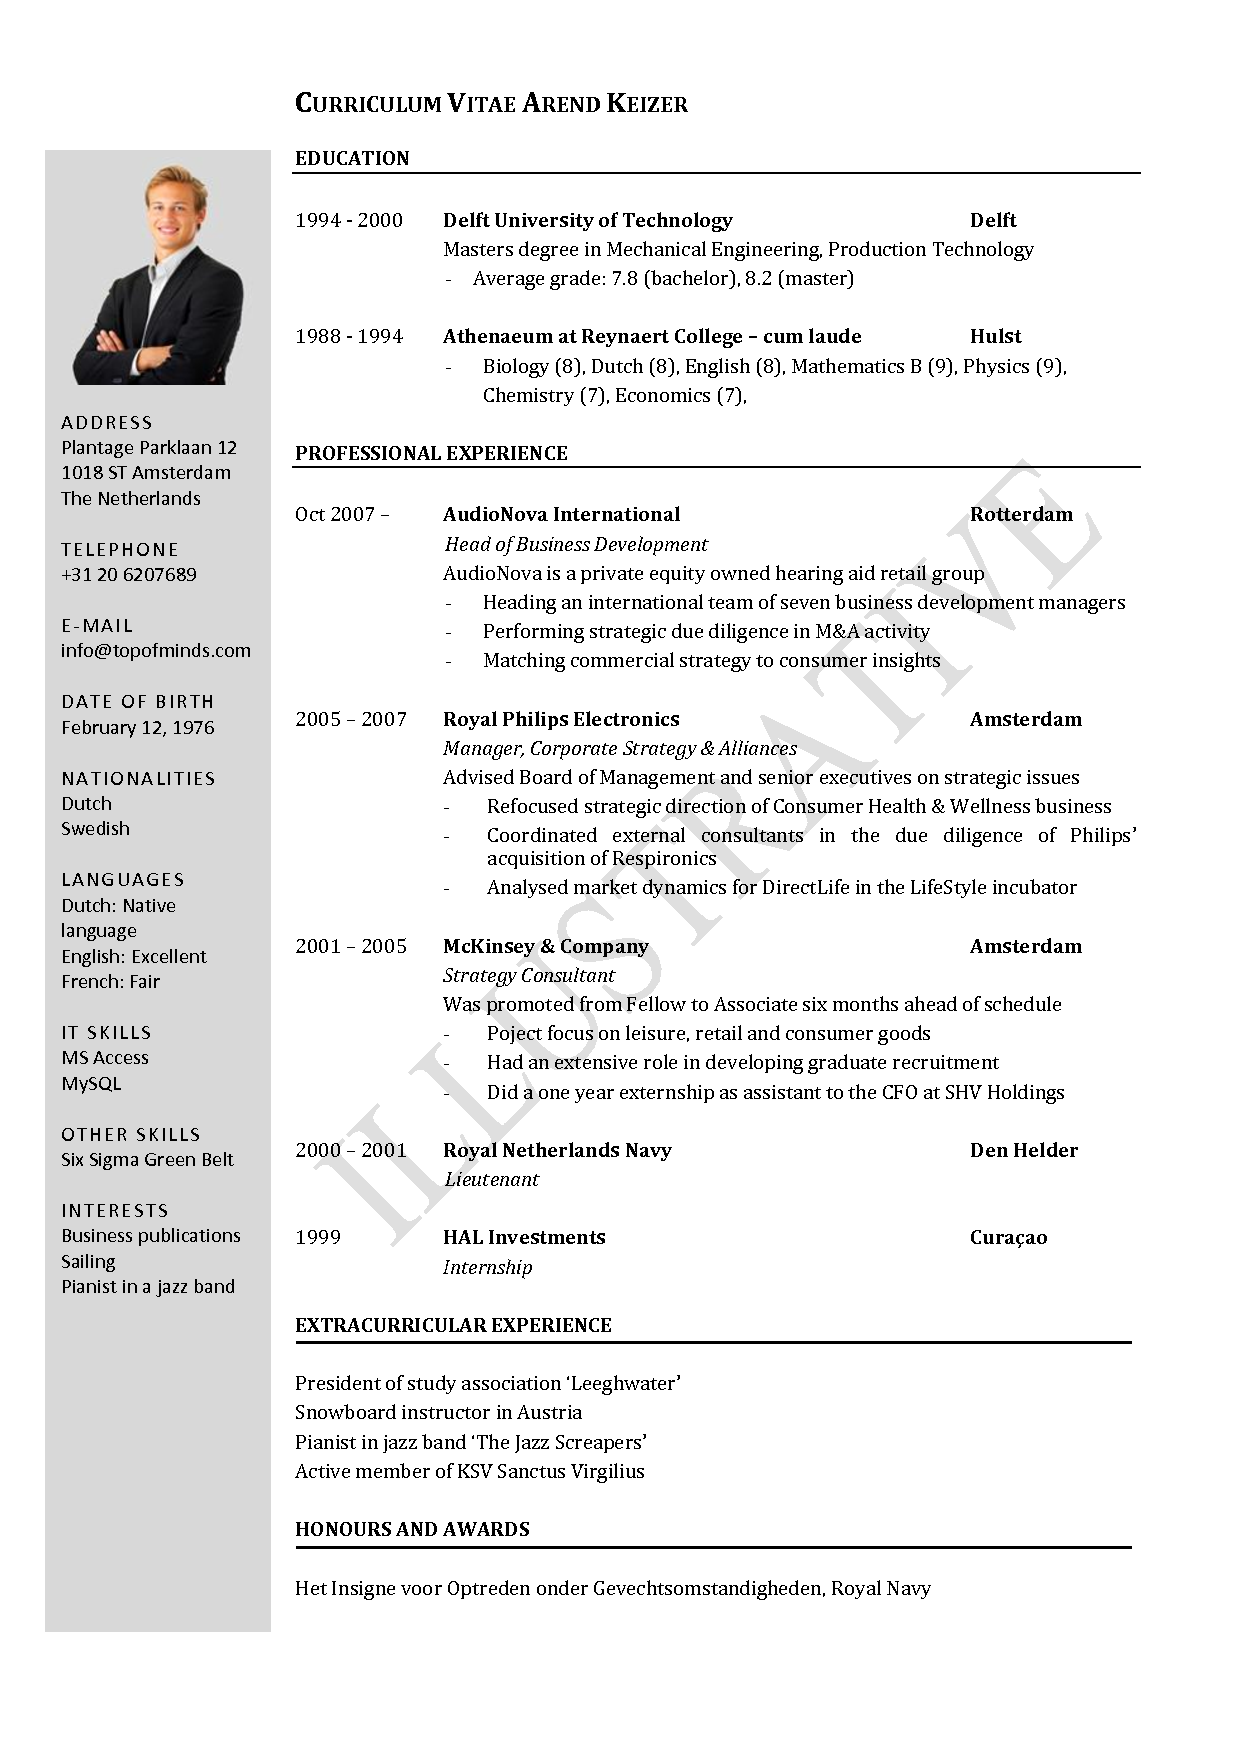 Cv Curriculum Vitae Formats Templates Homework Folders Resume